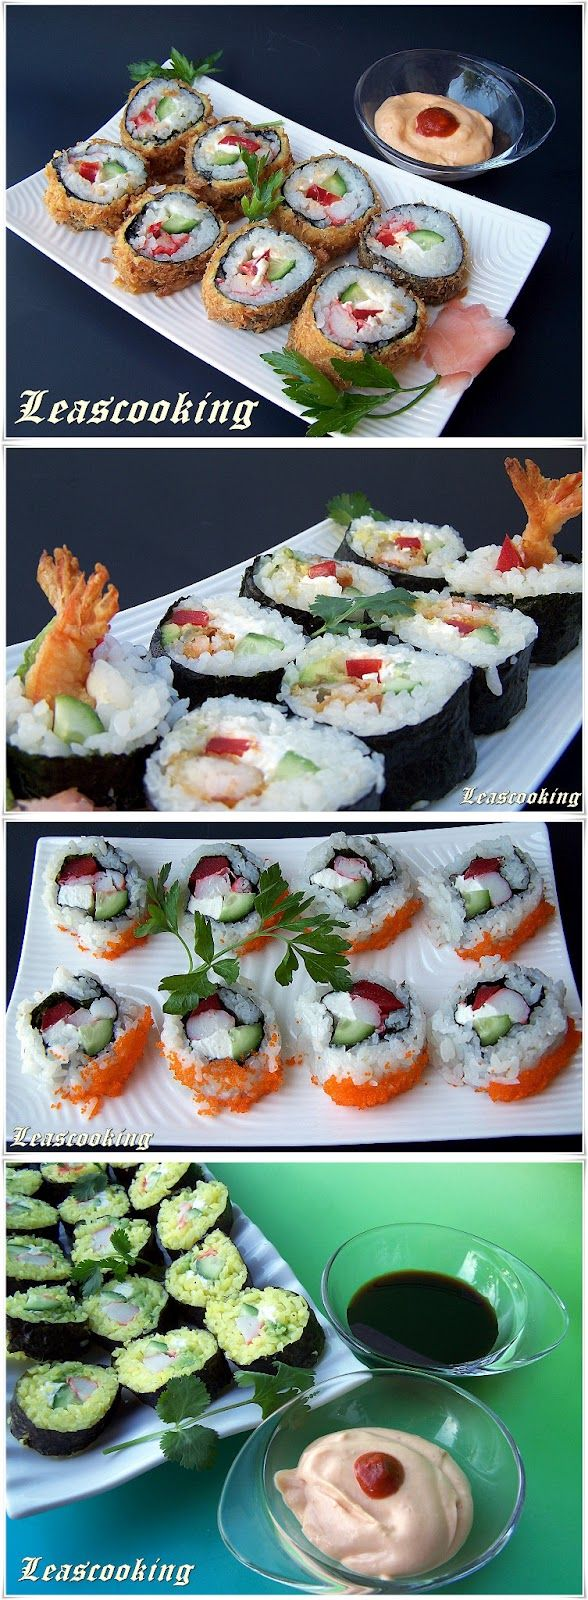 How to Make Fried Sushi yesssssss so making this :)